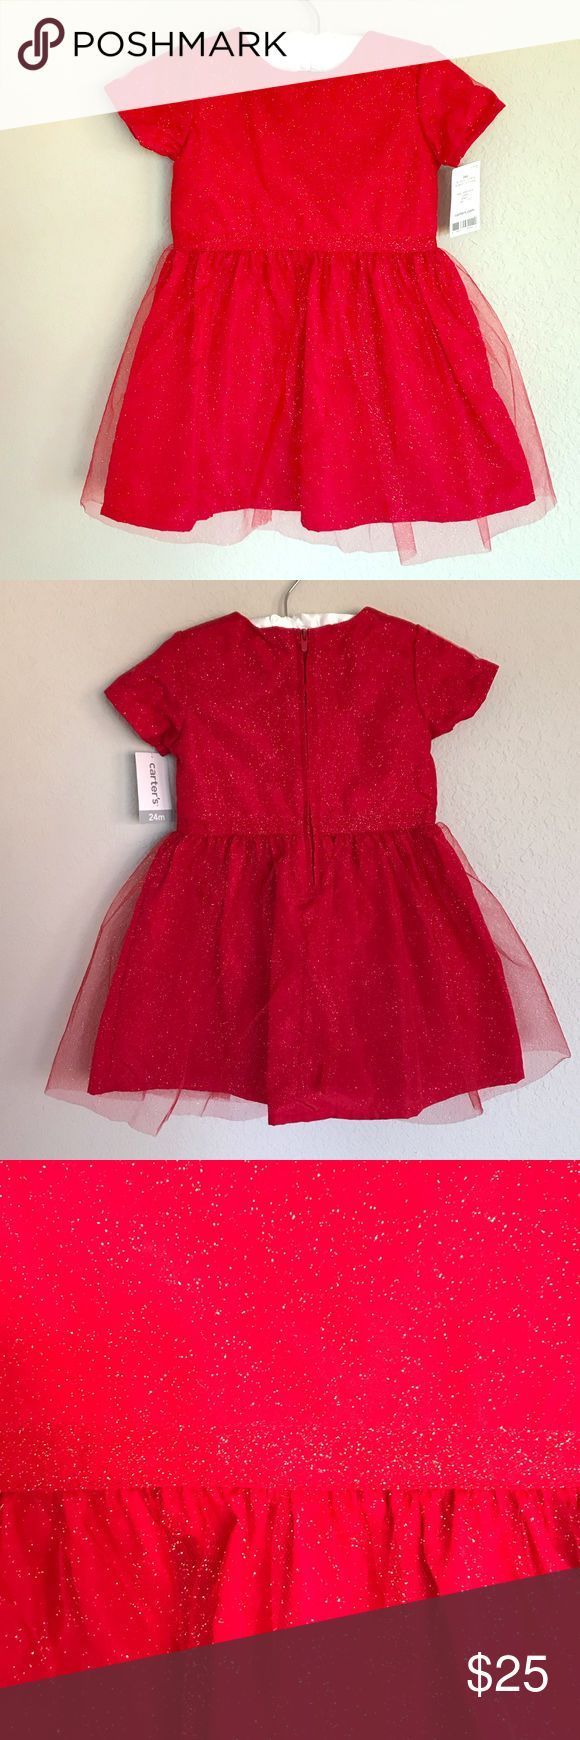 Carters Red Holiday Dress, Subtle Gold Glitter 24m Bright red dress with gold glitter detailing. Mesh along the fabric on top and then separates to give two layers to the skirt. Zipper in the back. Comes with matching diaper cover. Carter's Dresses Formal